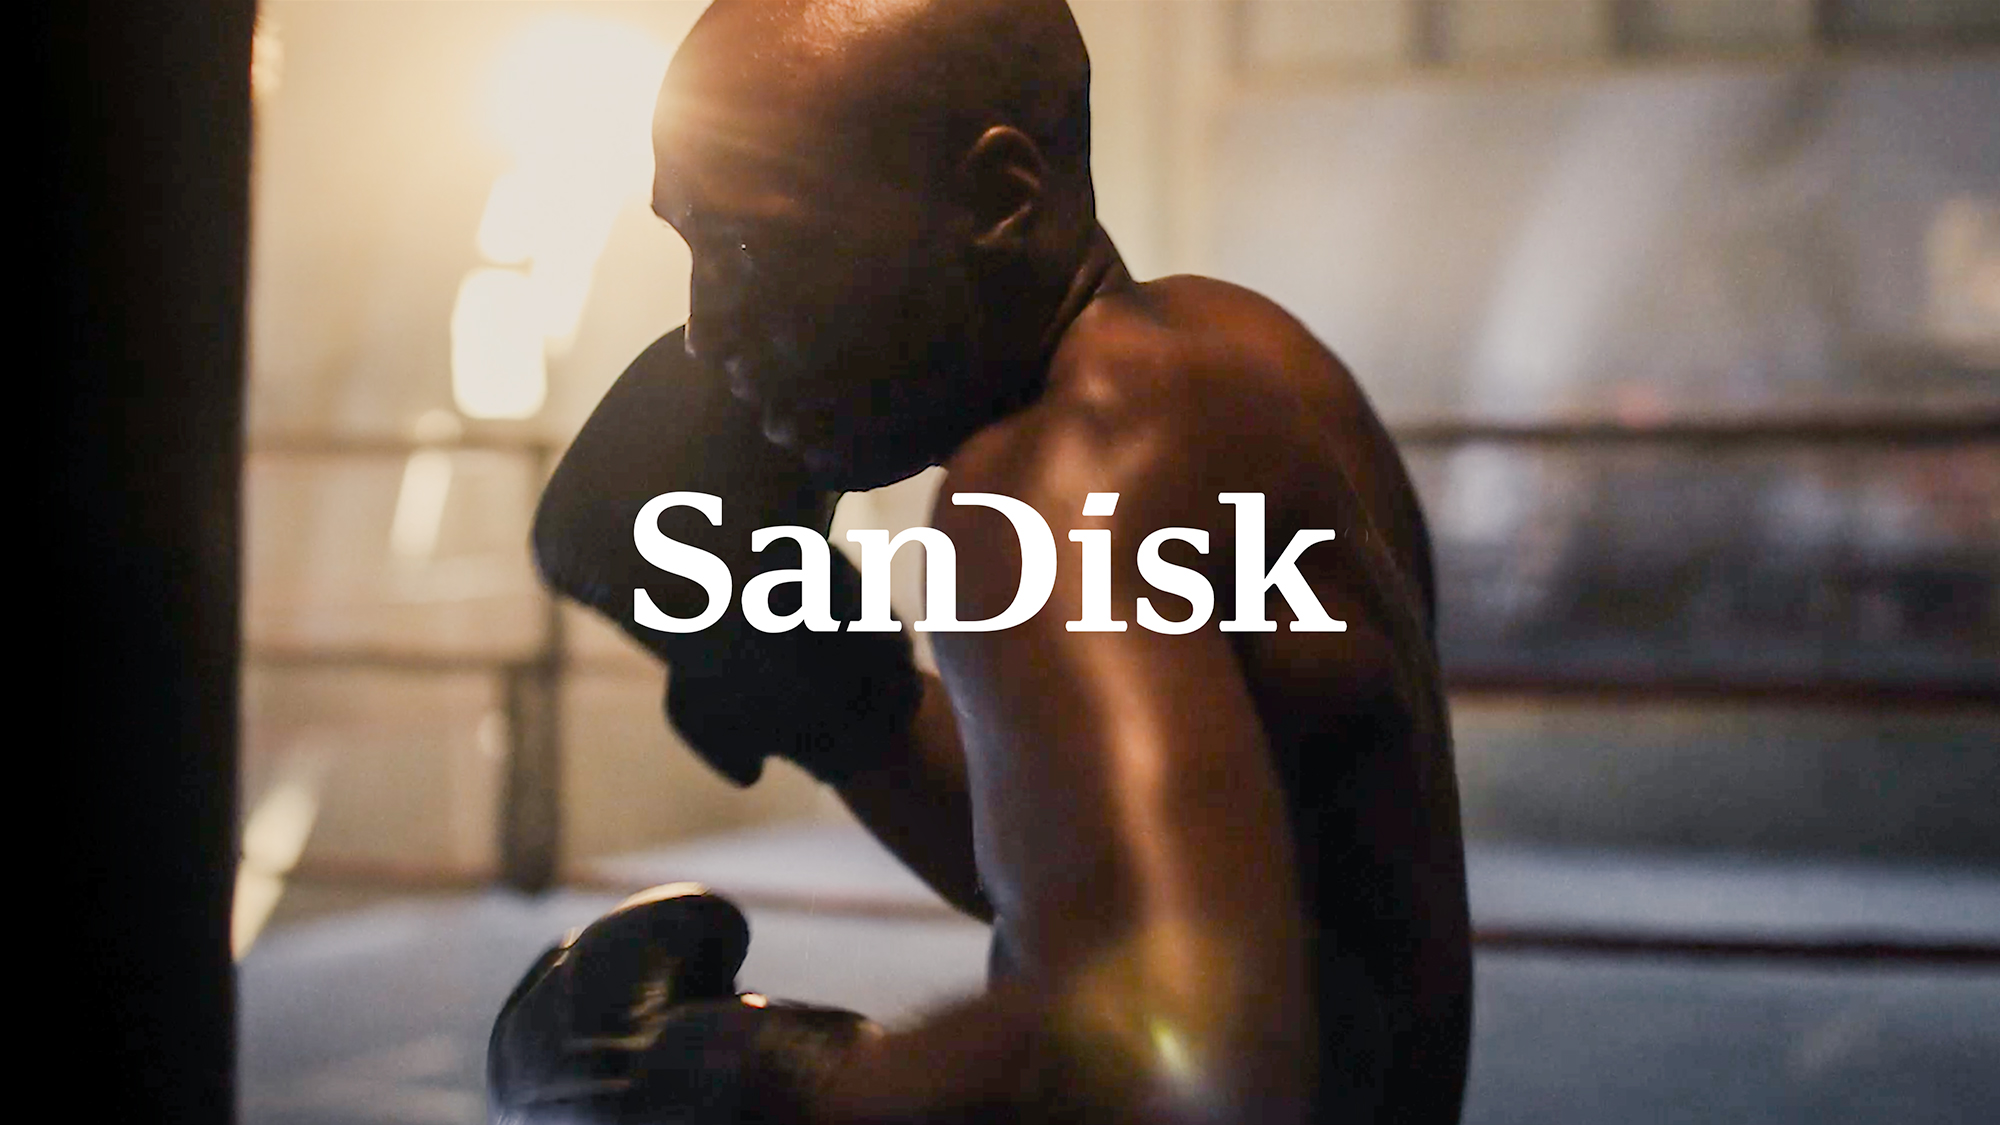 A still image from director Tyler Stableford's SanDisk commercial featuring a boxing gym.